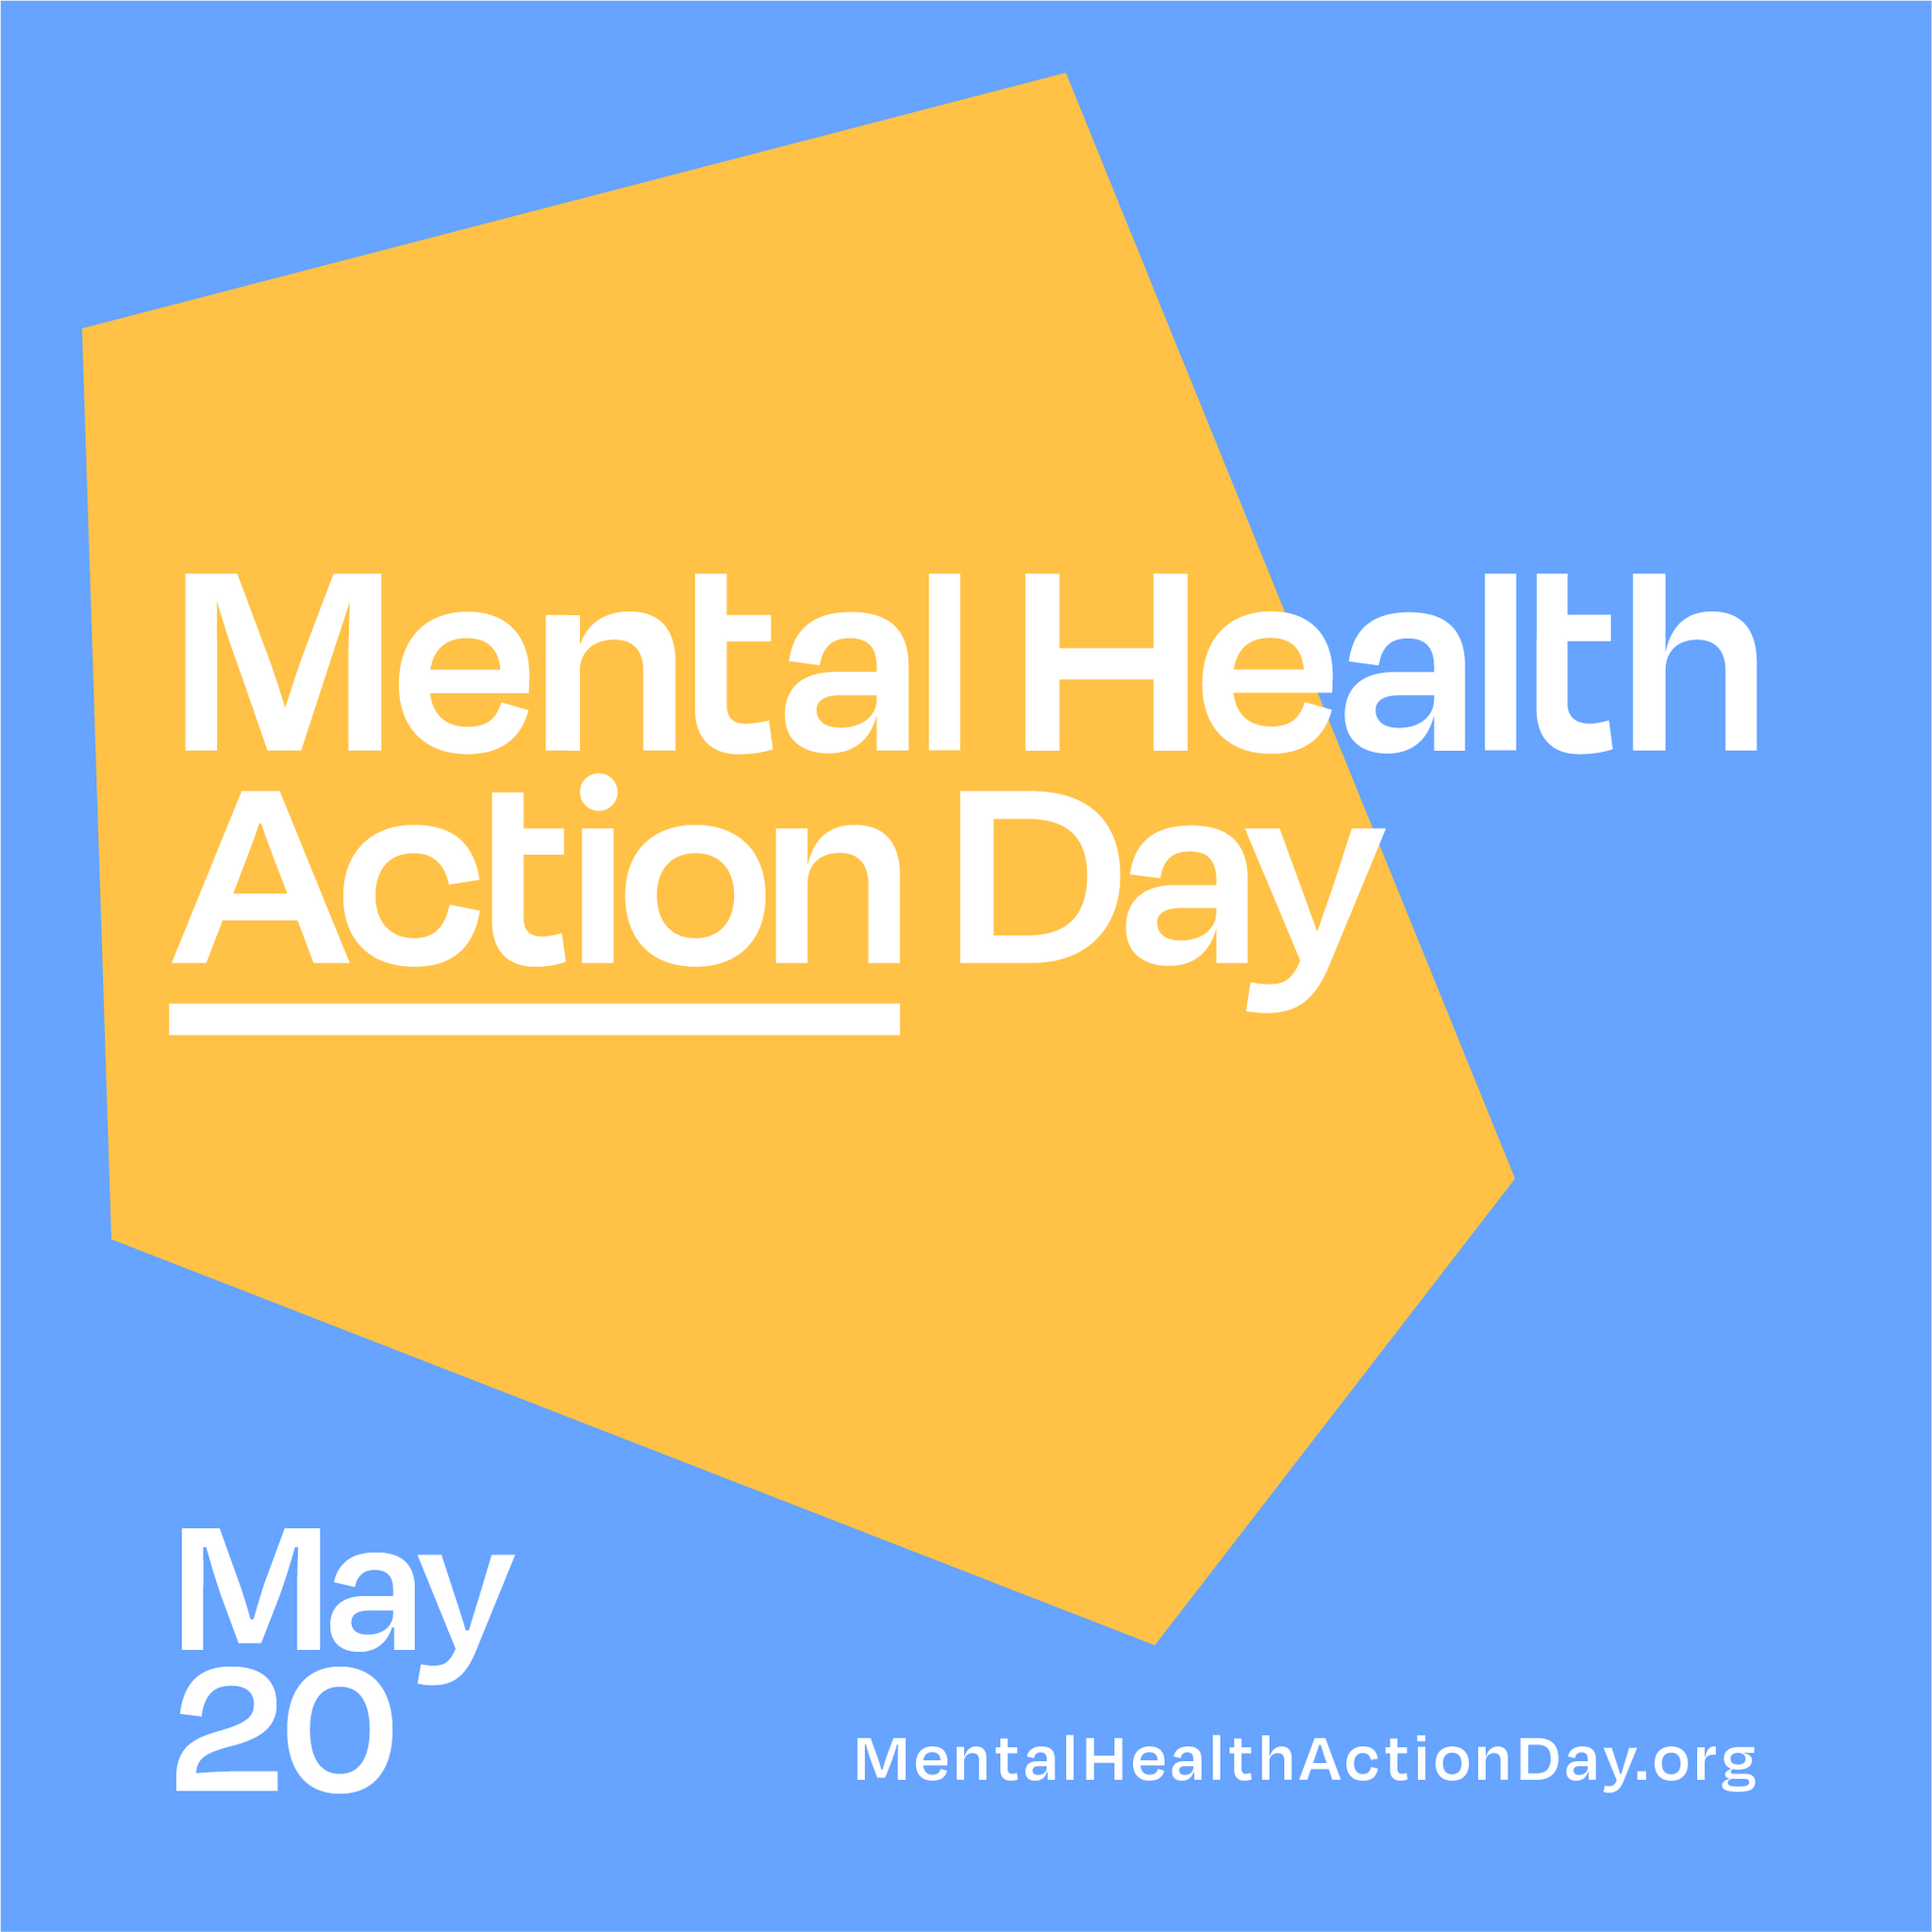 VRYeveryday joins Mental Health Action Day May 20th.